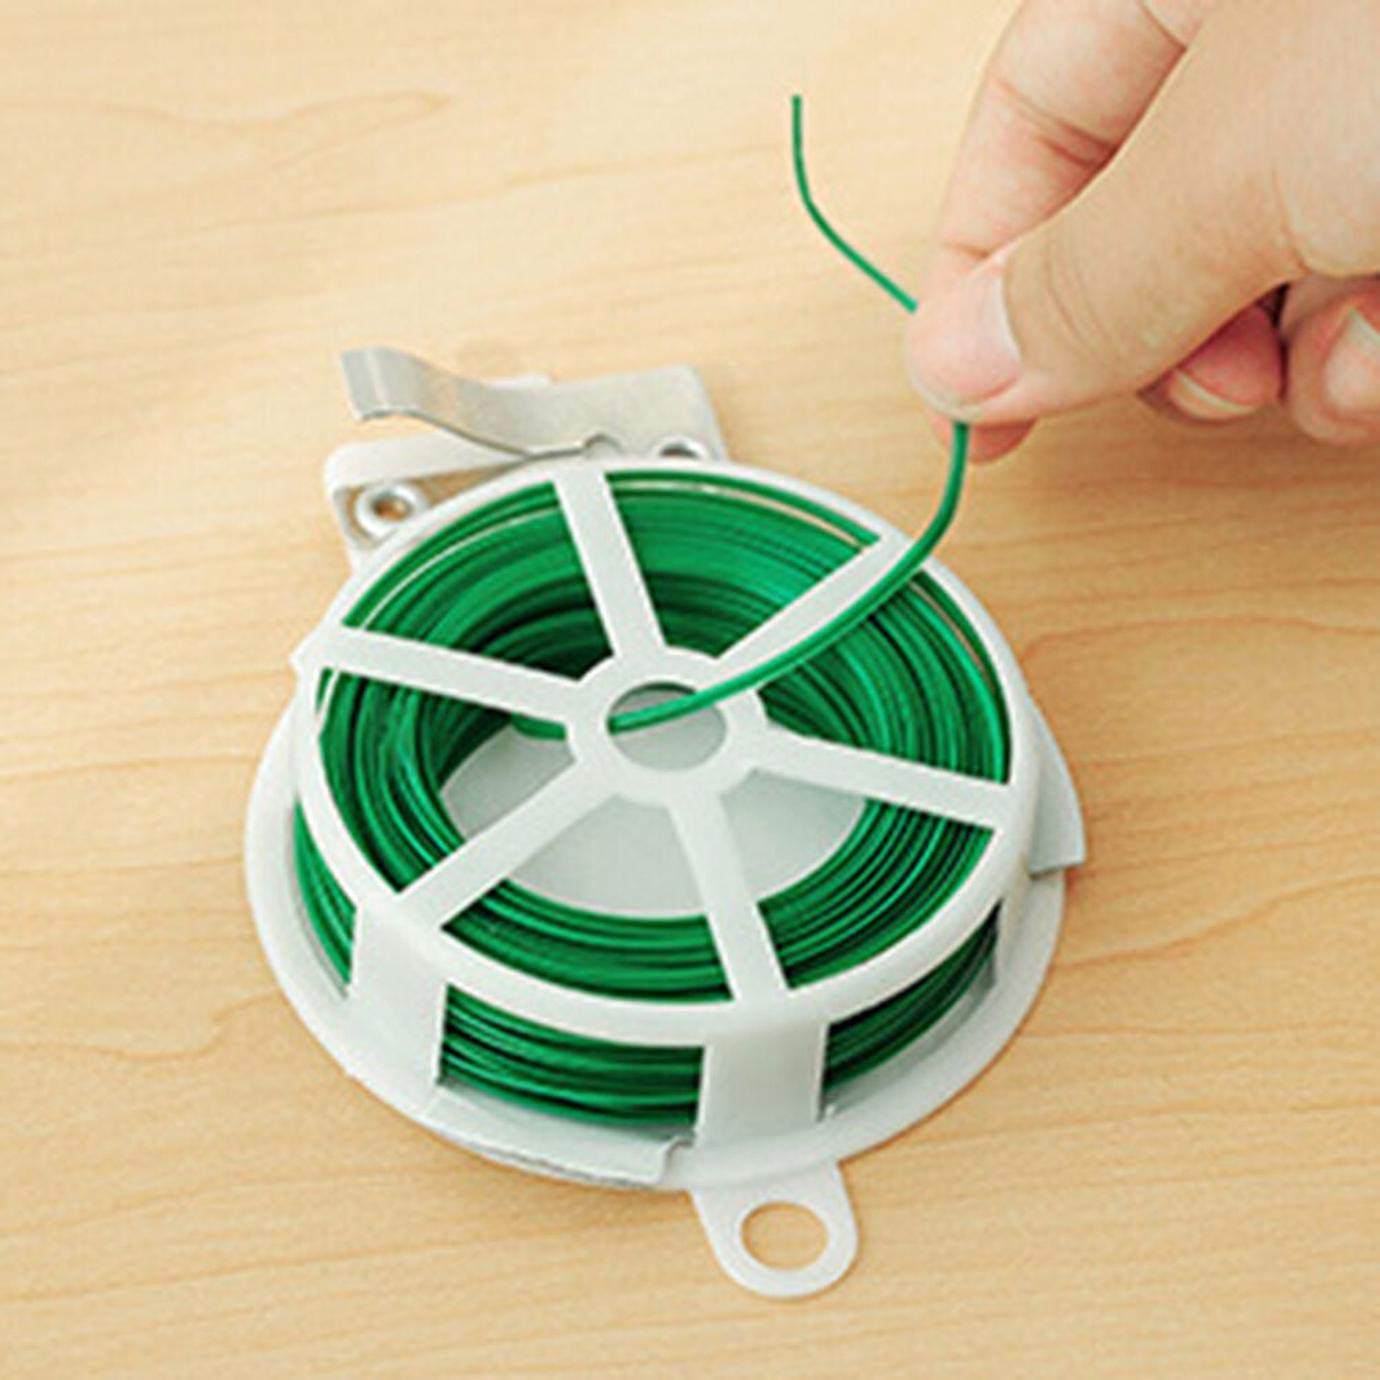 None Picture Color FUdeza Sturdy 328 Feet 100m Green Multi-Function Sturdy Garden Plant Twist Tie with Cutter//Cable Tie//Zip Tie//Coated Wire for Home Decoration